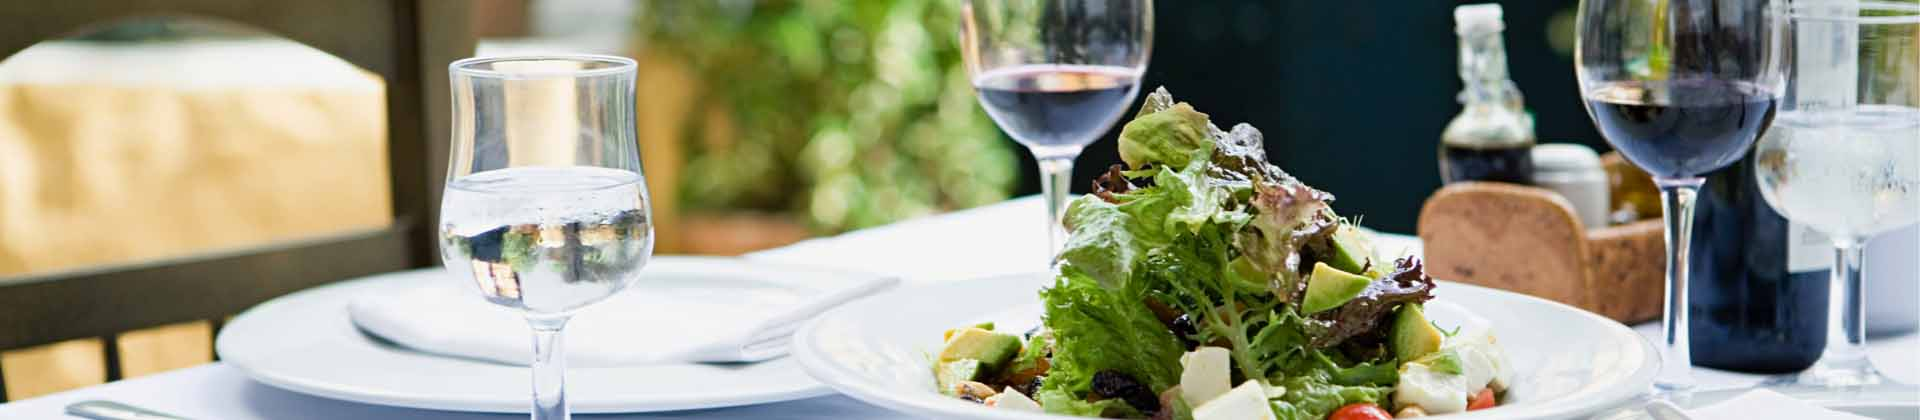 A close up photo of a plated salad with a glass of red wine and a glass of water